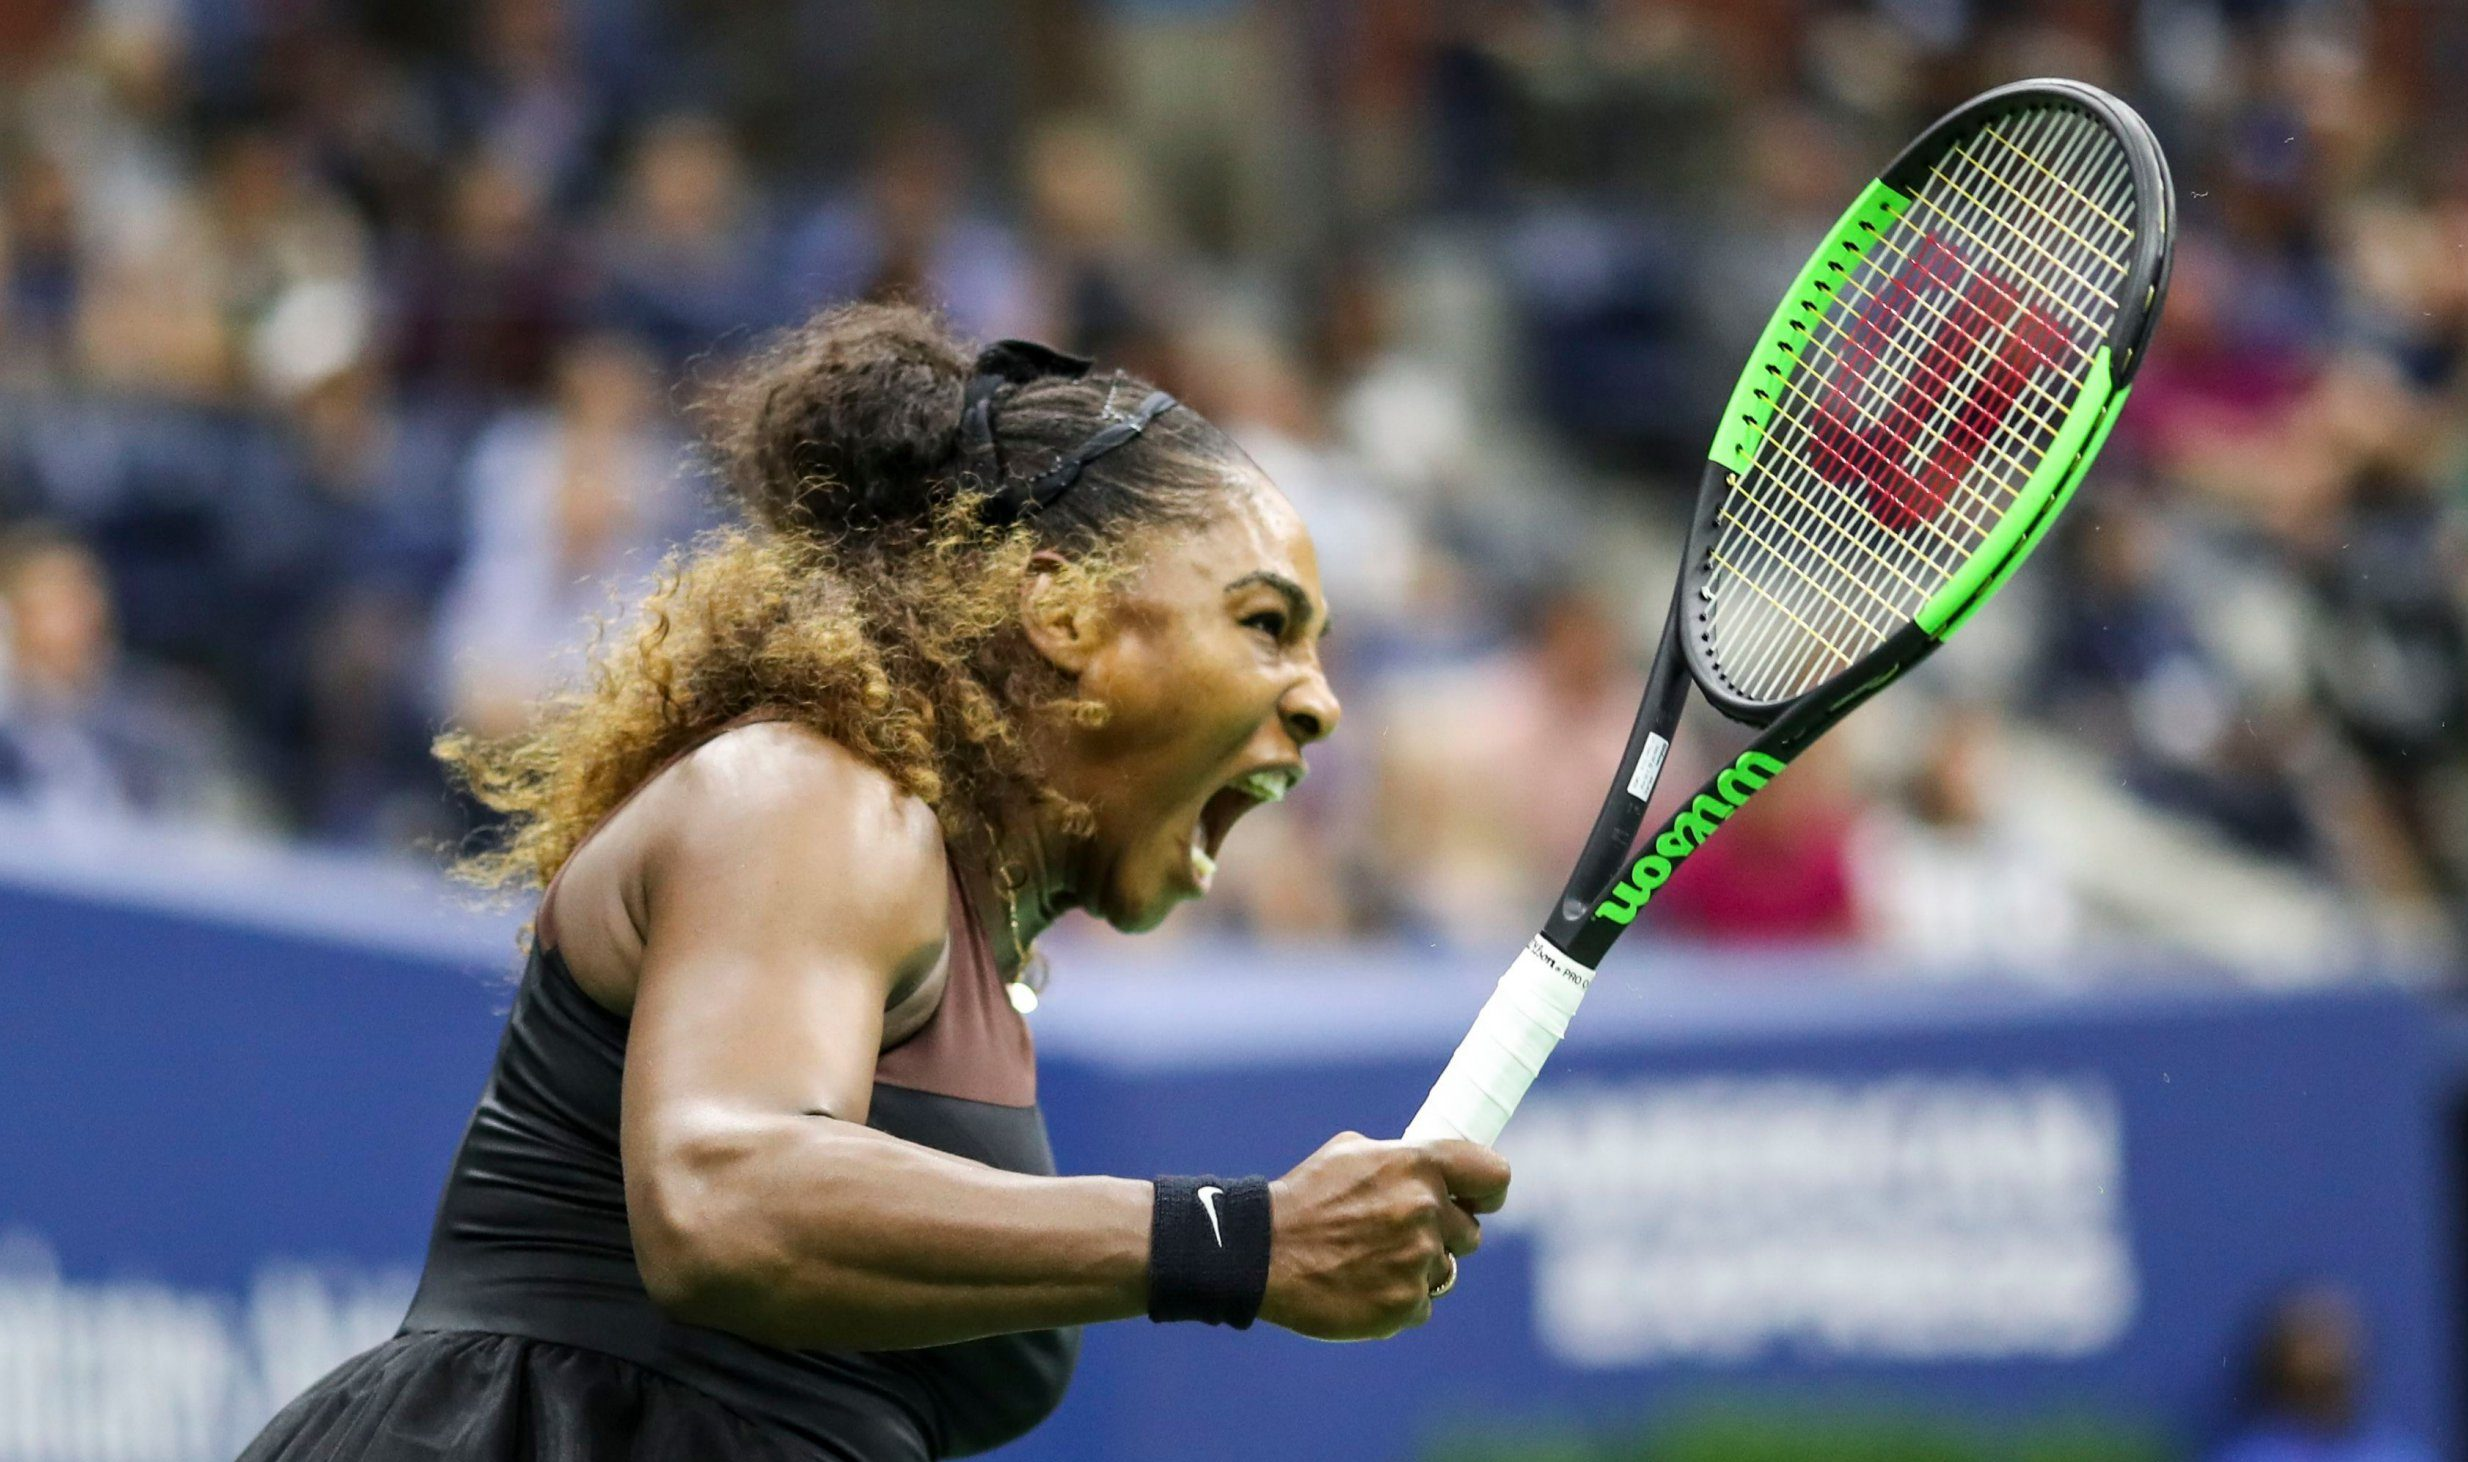 Celebrities react to Serena Williams 'meltdown' as she labels umpire 'sexist'